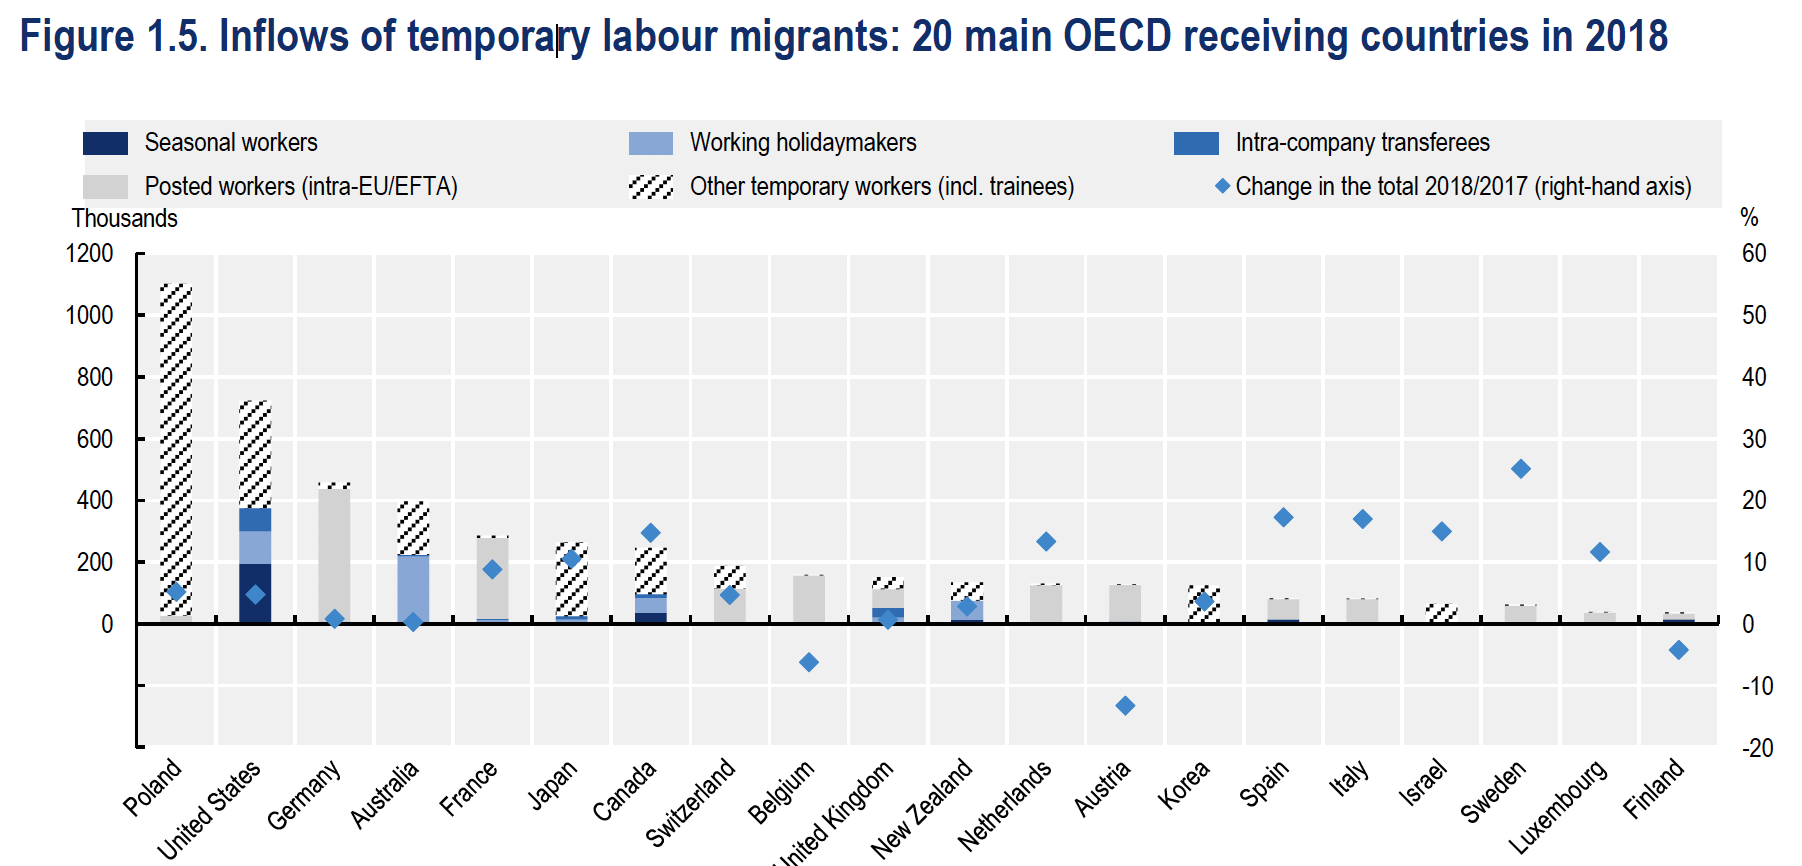 Poland, the US, and Germany accounted for half of the temporary foreign workers in 2018